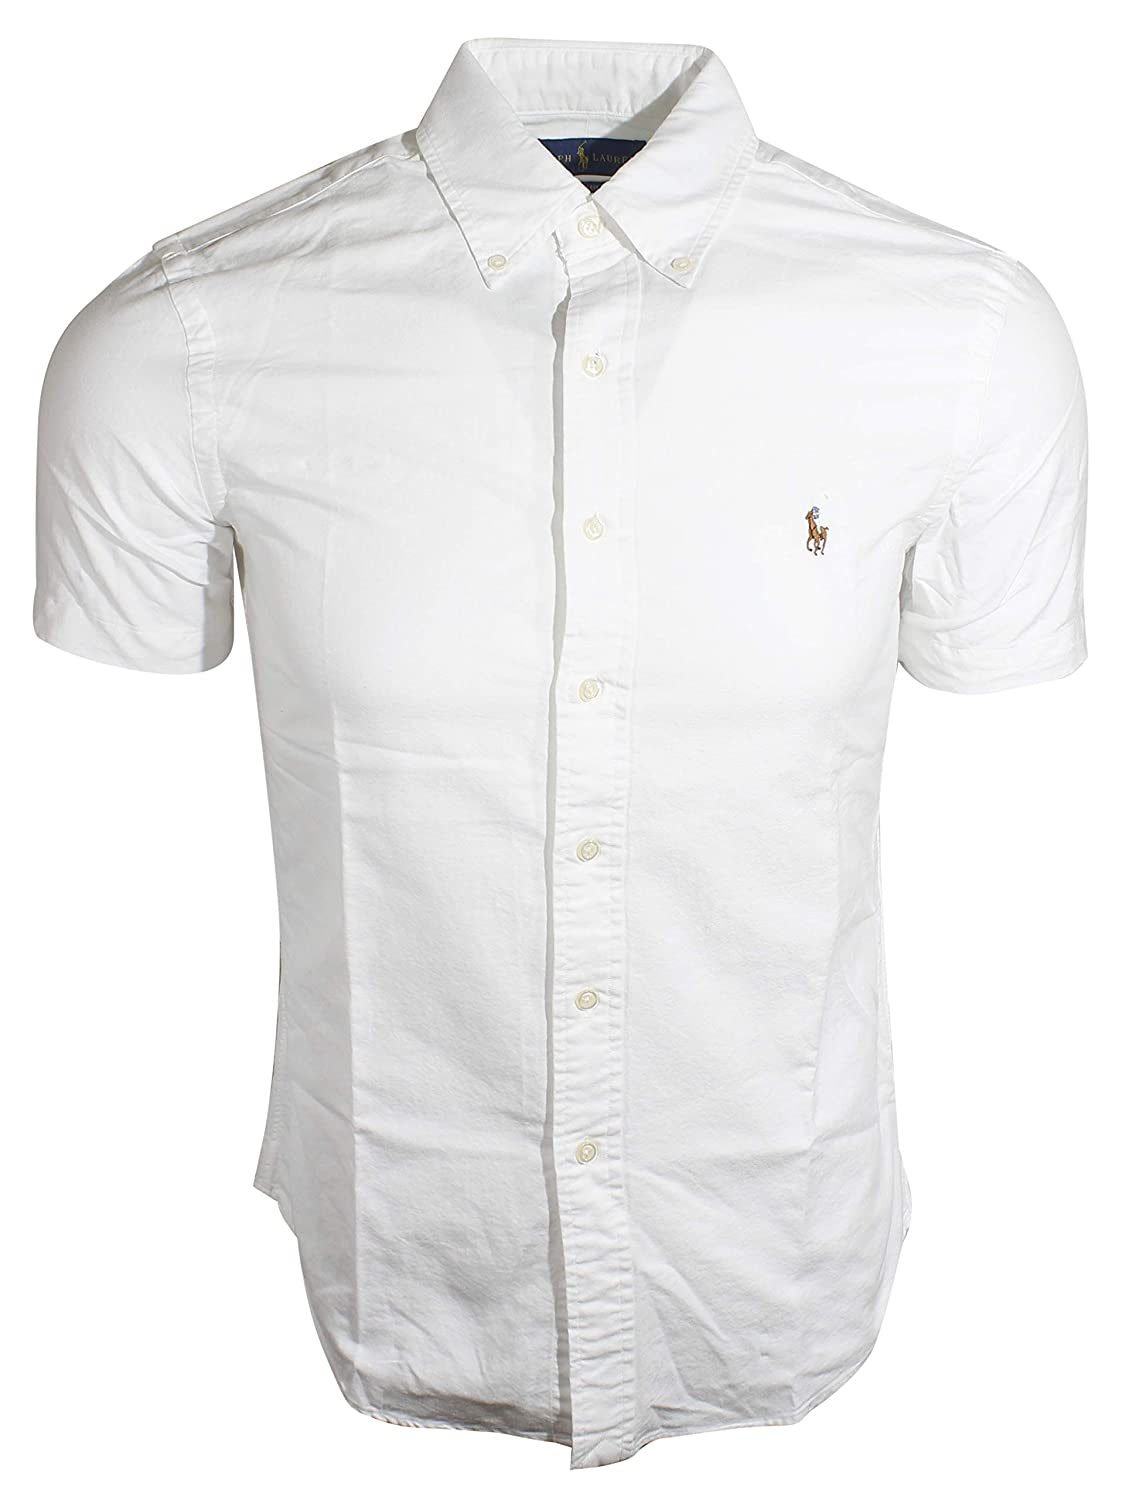 b9d9abcb6 RALPH LAUREN Men s Slim Fit Oxford Short Sleeve Striped Shirt at Amazon  Men s Clothing store